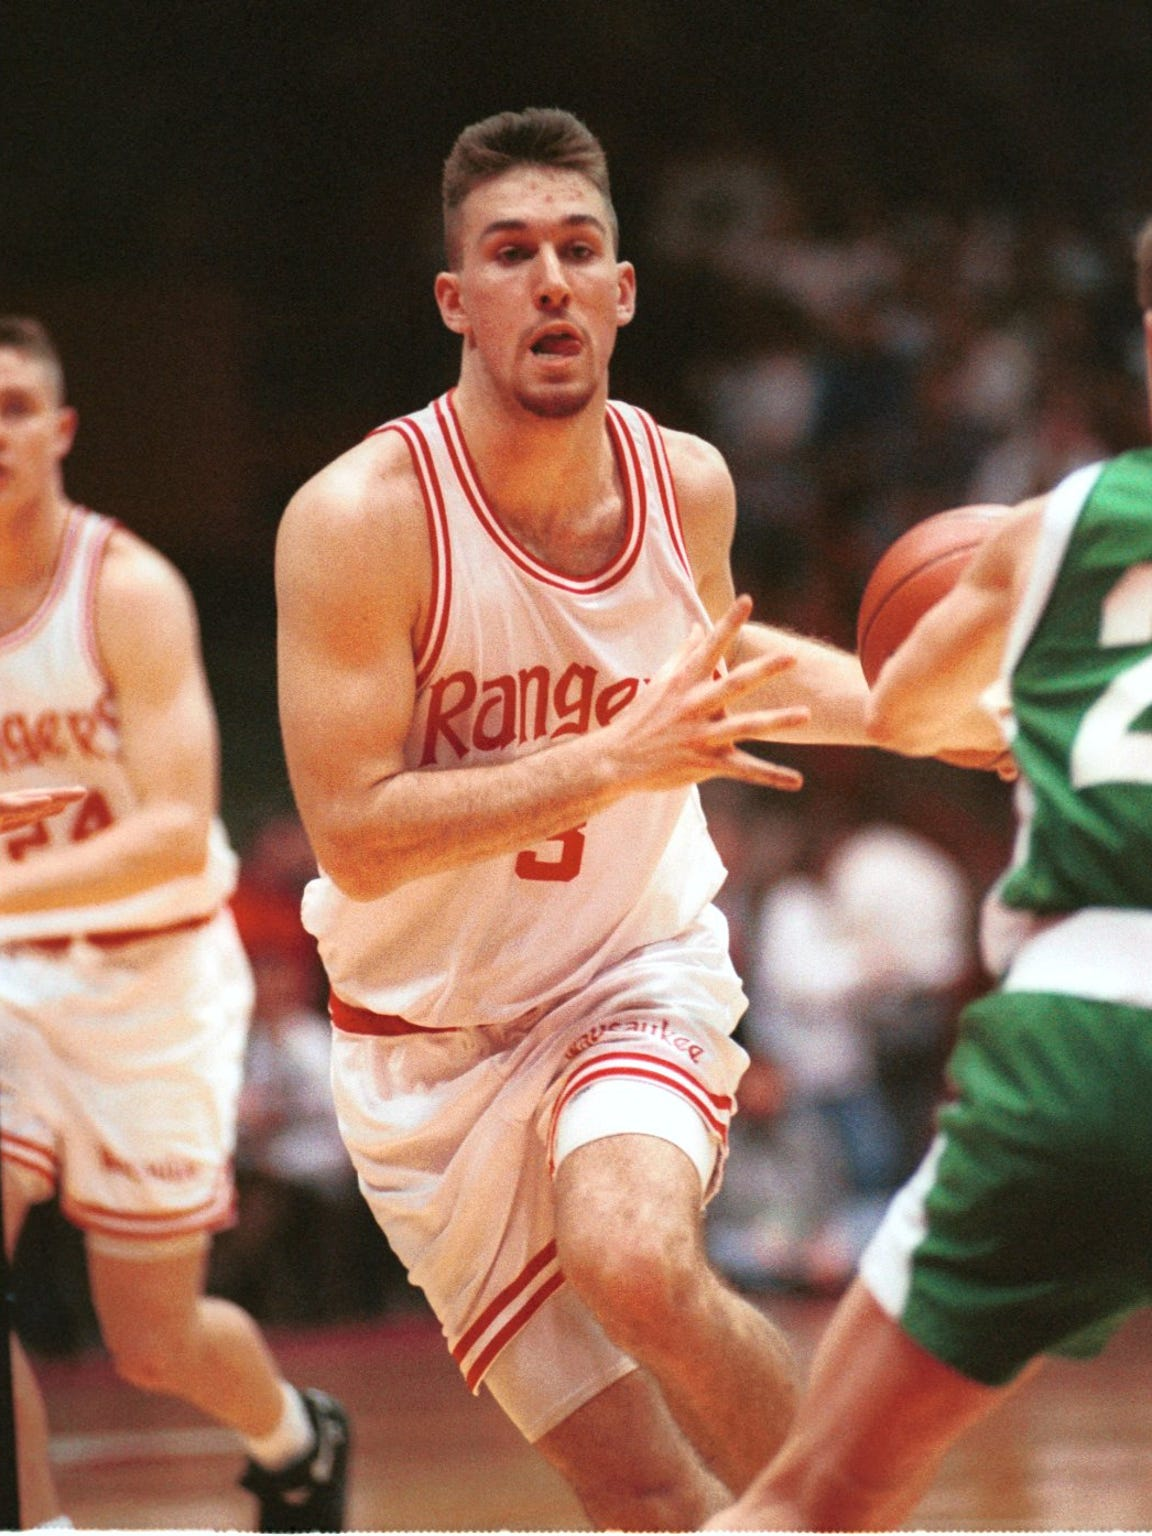 Wausaukee's Anthony Pieper Pieper outdueled Cassville's Sam Okey in the 1993 WIAA Division 4 boys state basketball championship. Pieper finished with 42 points and Okey scored 33 as Wausaukee beat Cassville 69-57.